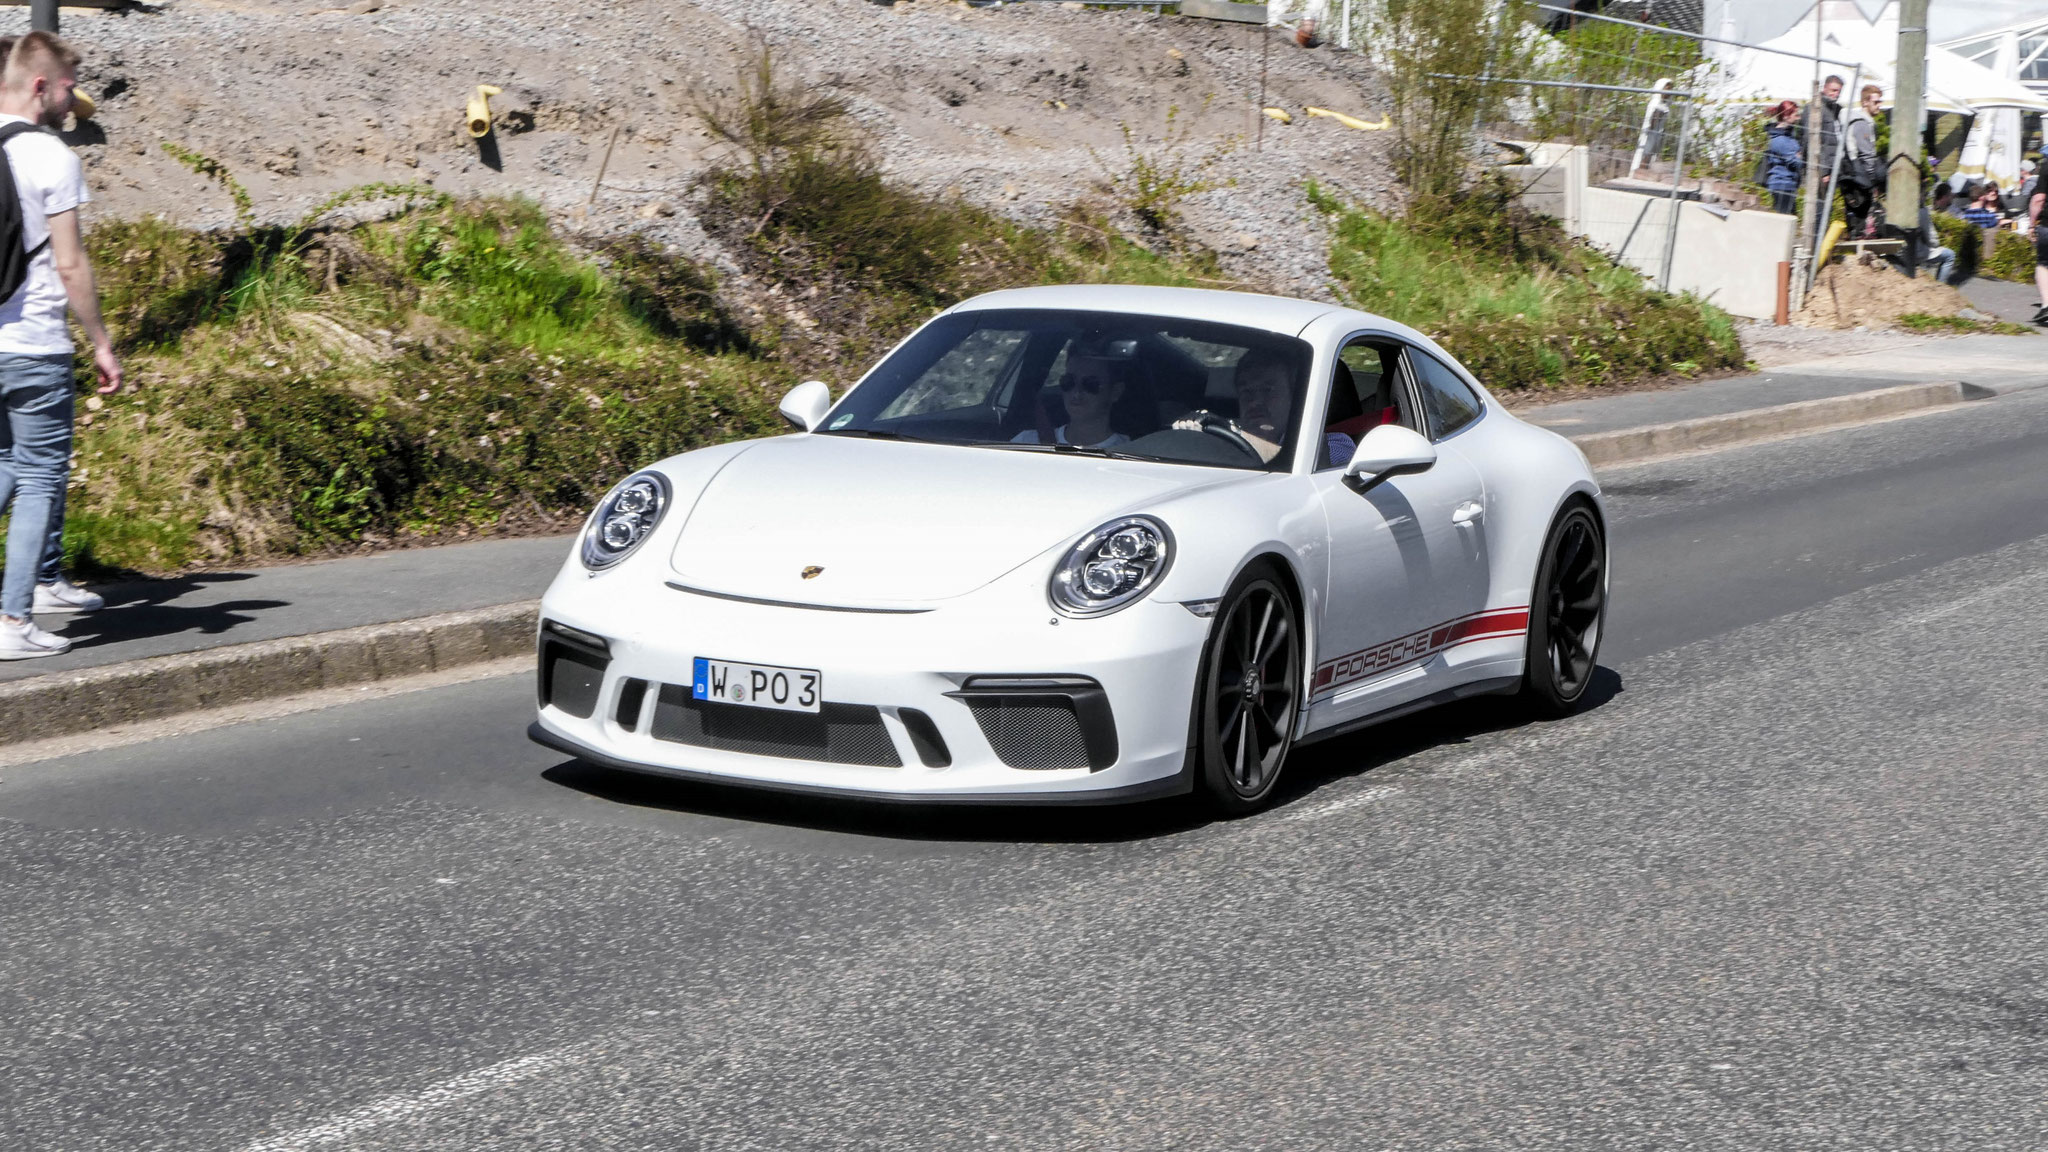 Porsche 991 GT3 Touring Package - W-PO-3